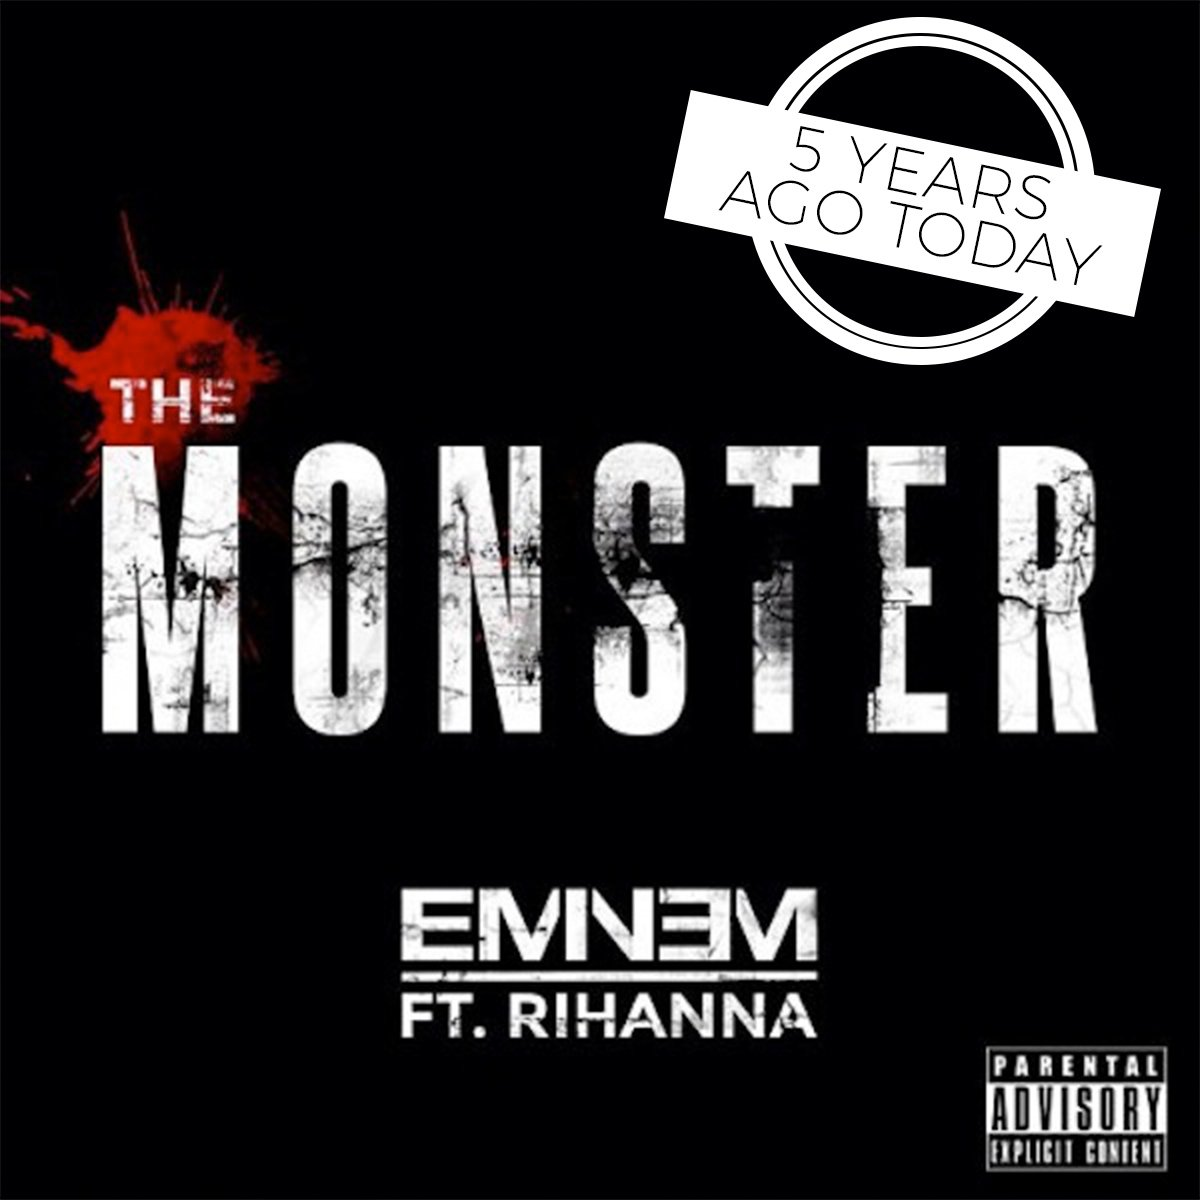 🙌 @Eminem and @rihannas The Monster reached No. 1 5️⃣ years ago today!